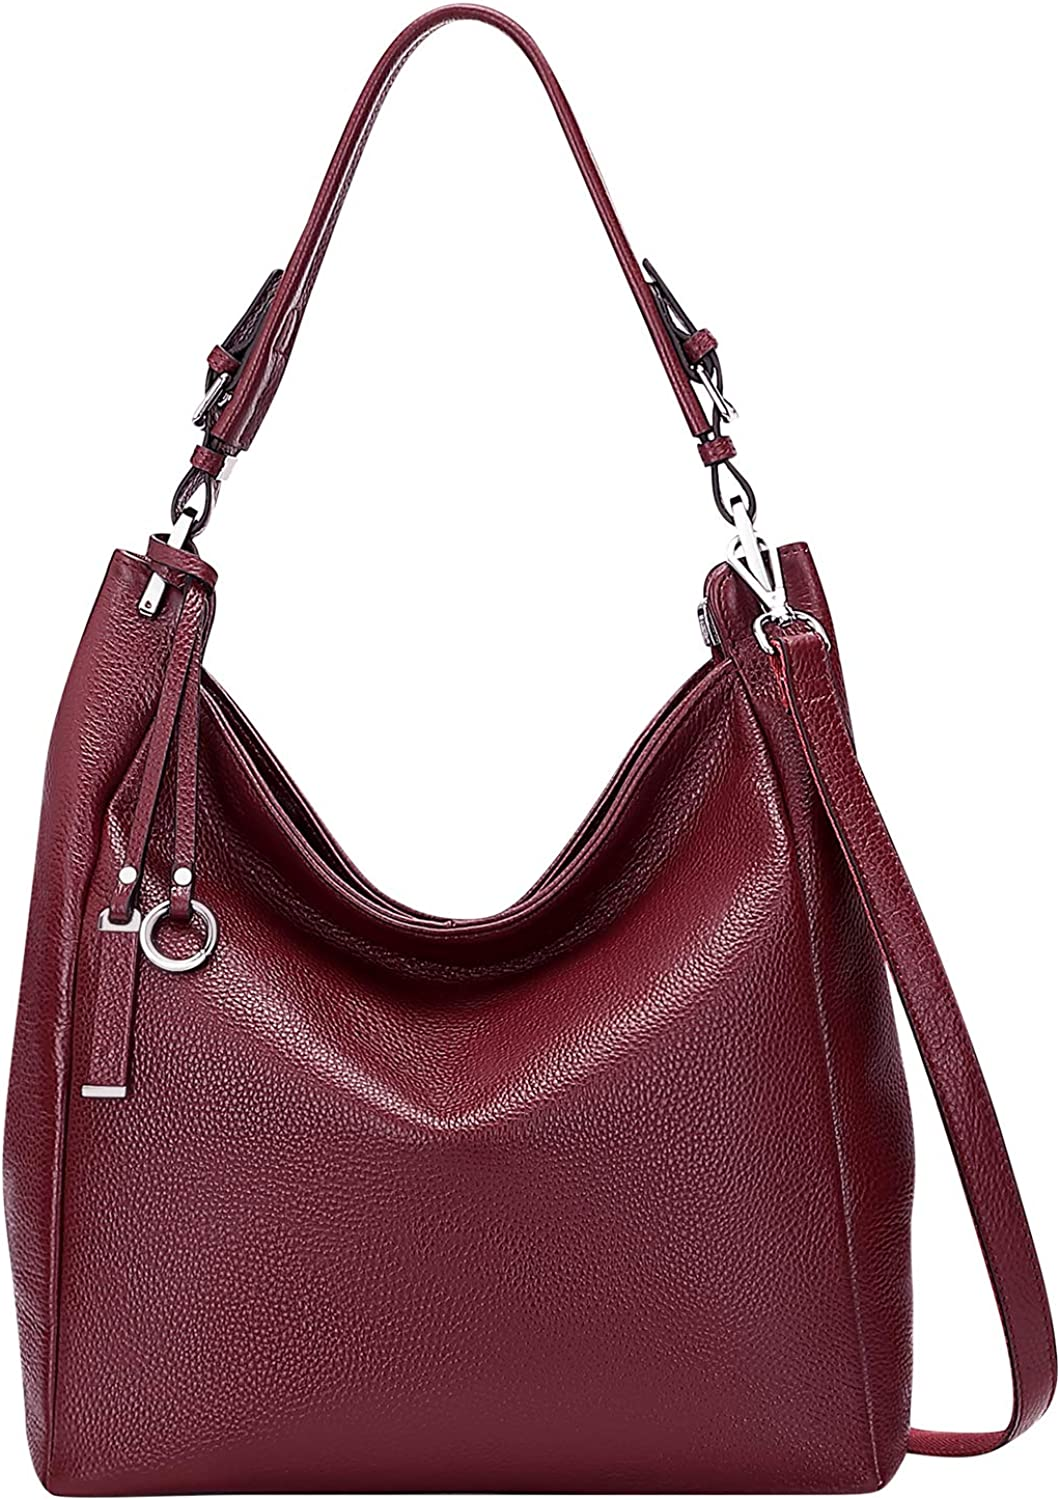 ALTOSY Shoulder Bags for Women Hobo Genuine Ladies Leather Spasm price Max 68% OFF Large